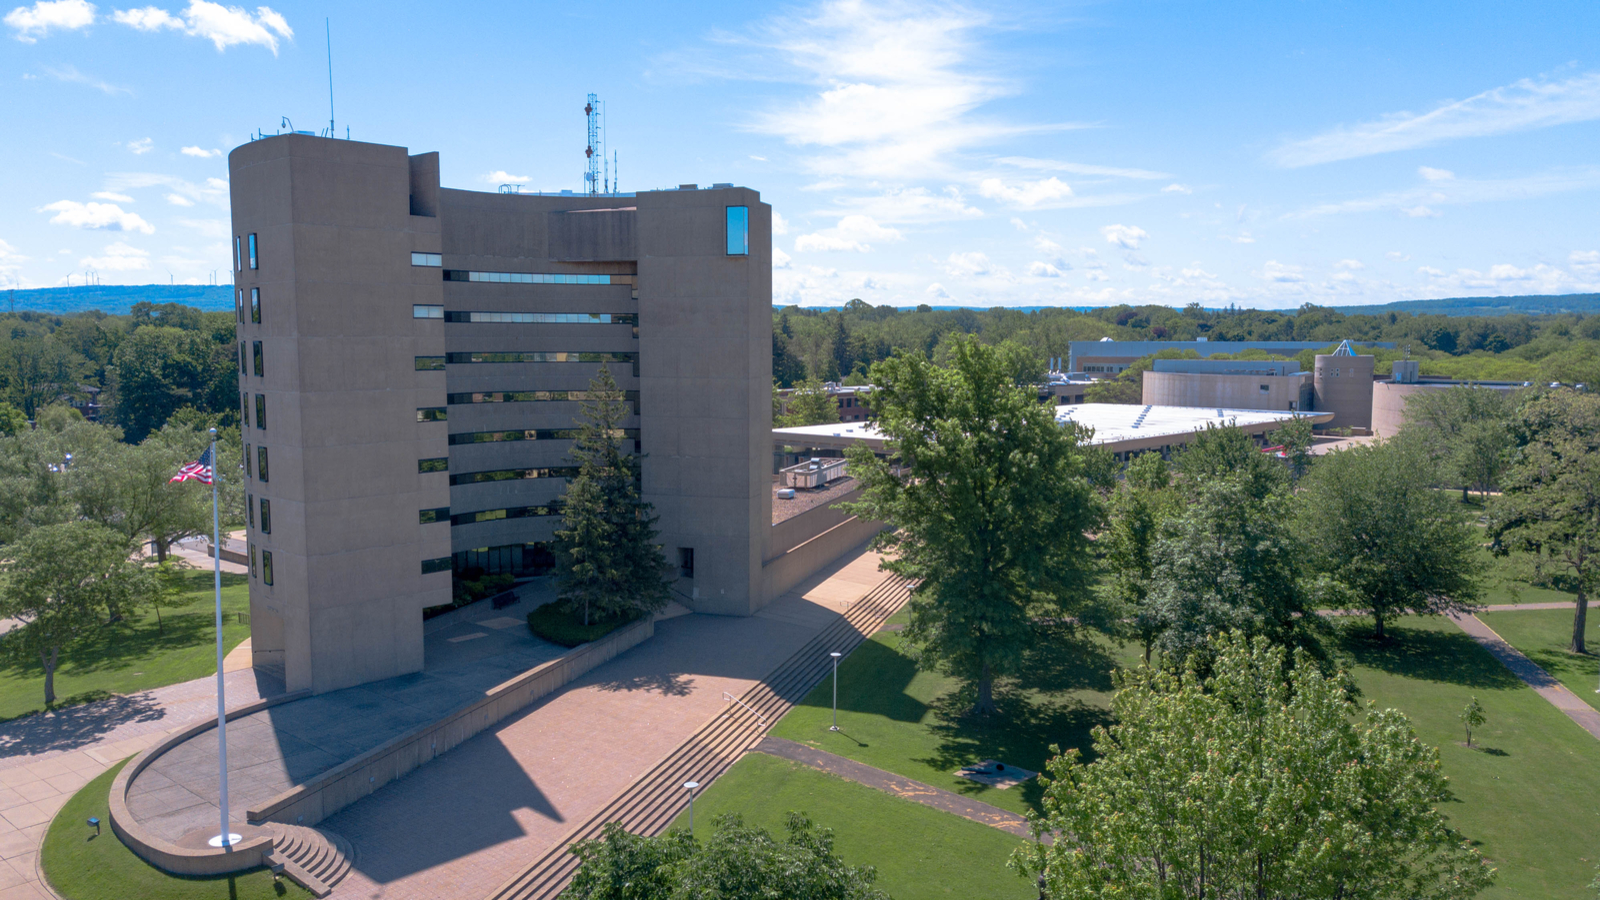 Aerial photo of Maytum Hall